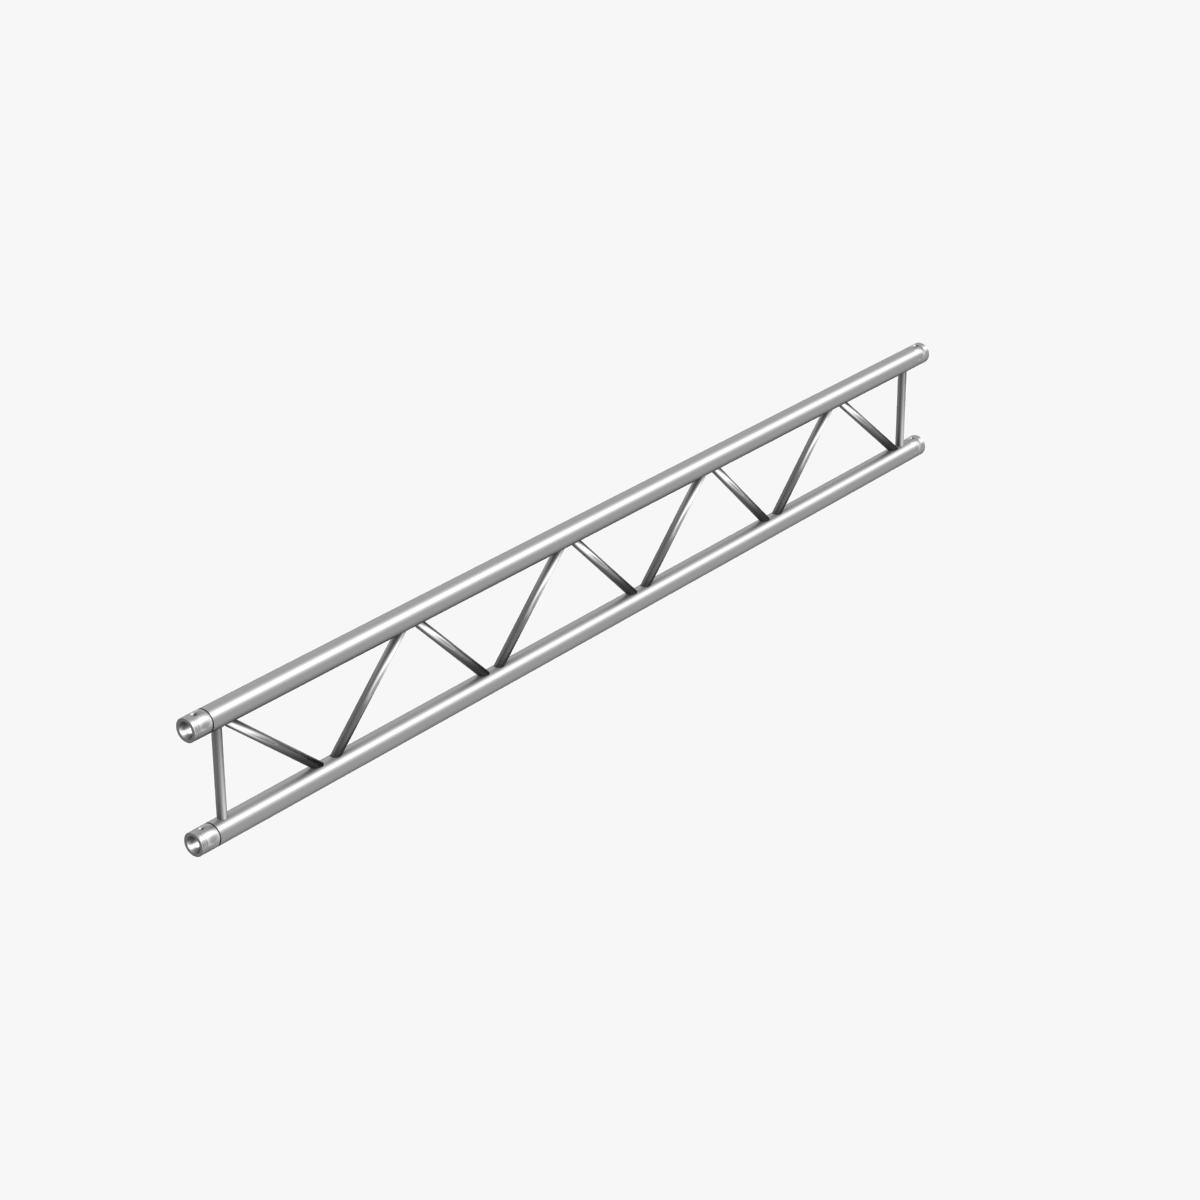 beam trusses (collection 24 modular pieces) 3d model 3ds max dxf fbx bmp blend c4d dae other obj 268725